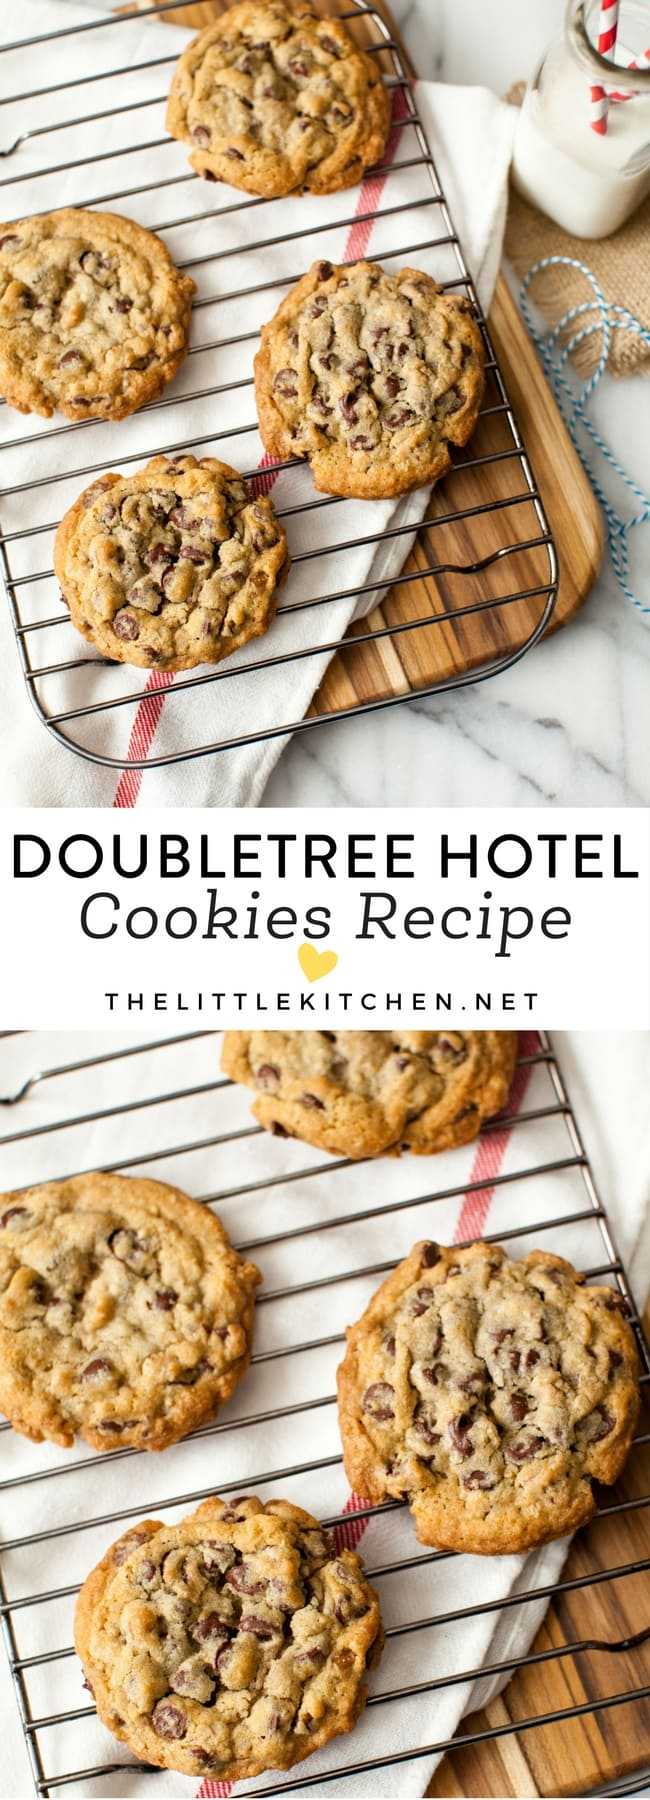 DoubleTree Hotel Chocolate Chip Cookies thelittlekitchen.net